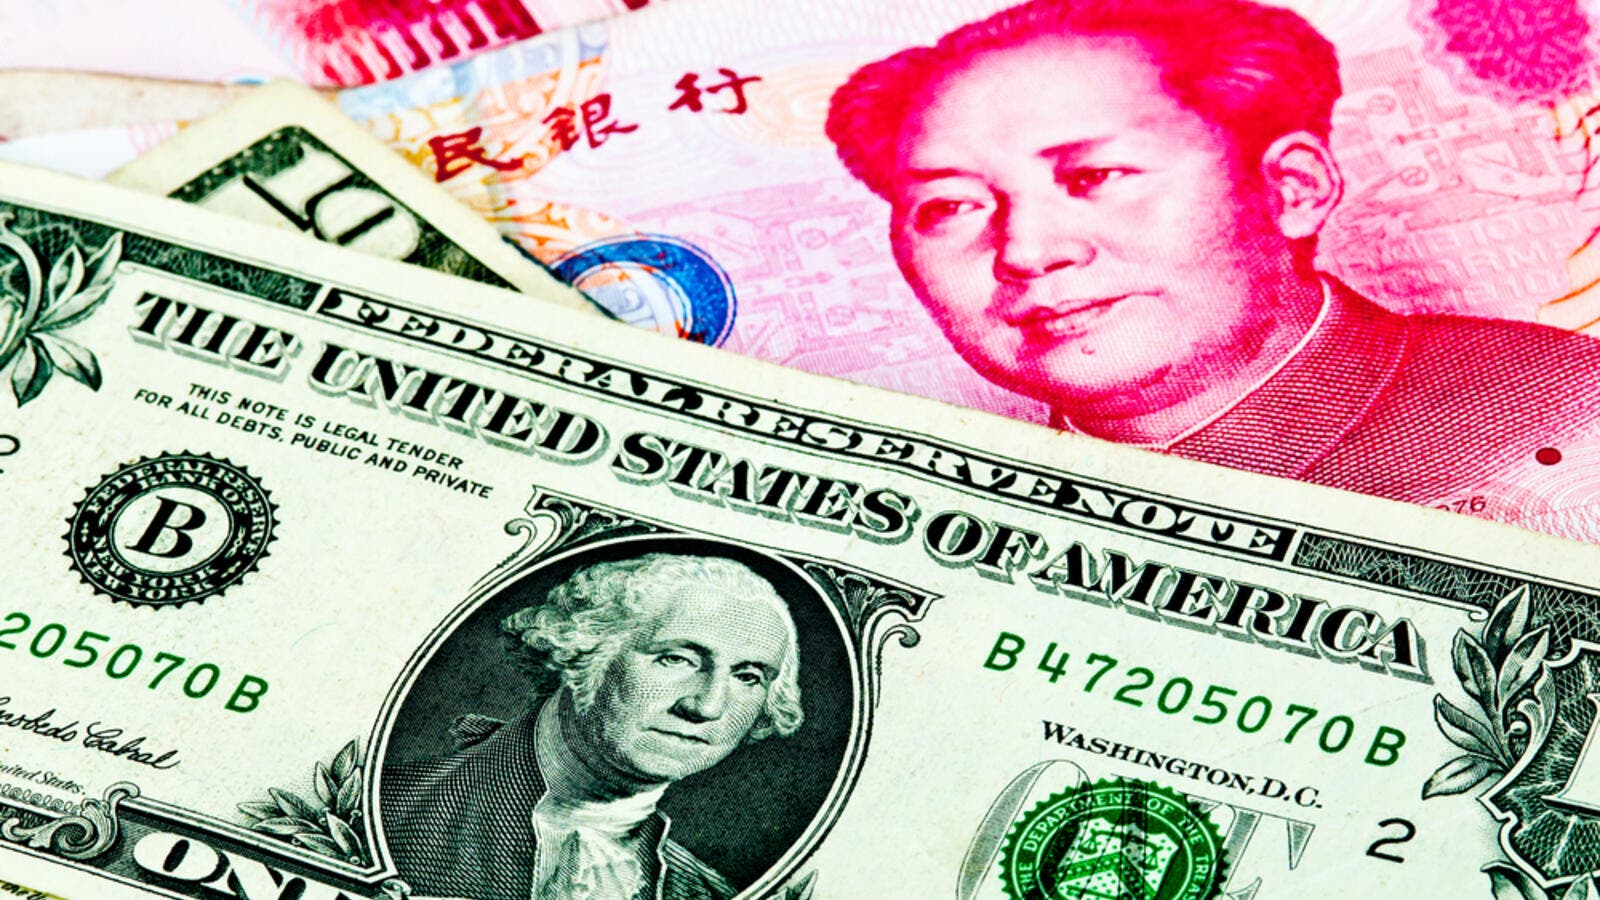 US duties on $250 billion in Chinese imports are due to rise in five days while relations deteriorated through the week.